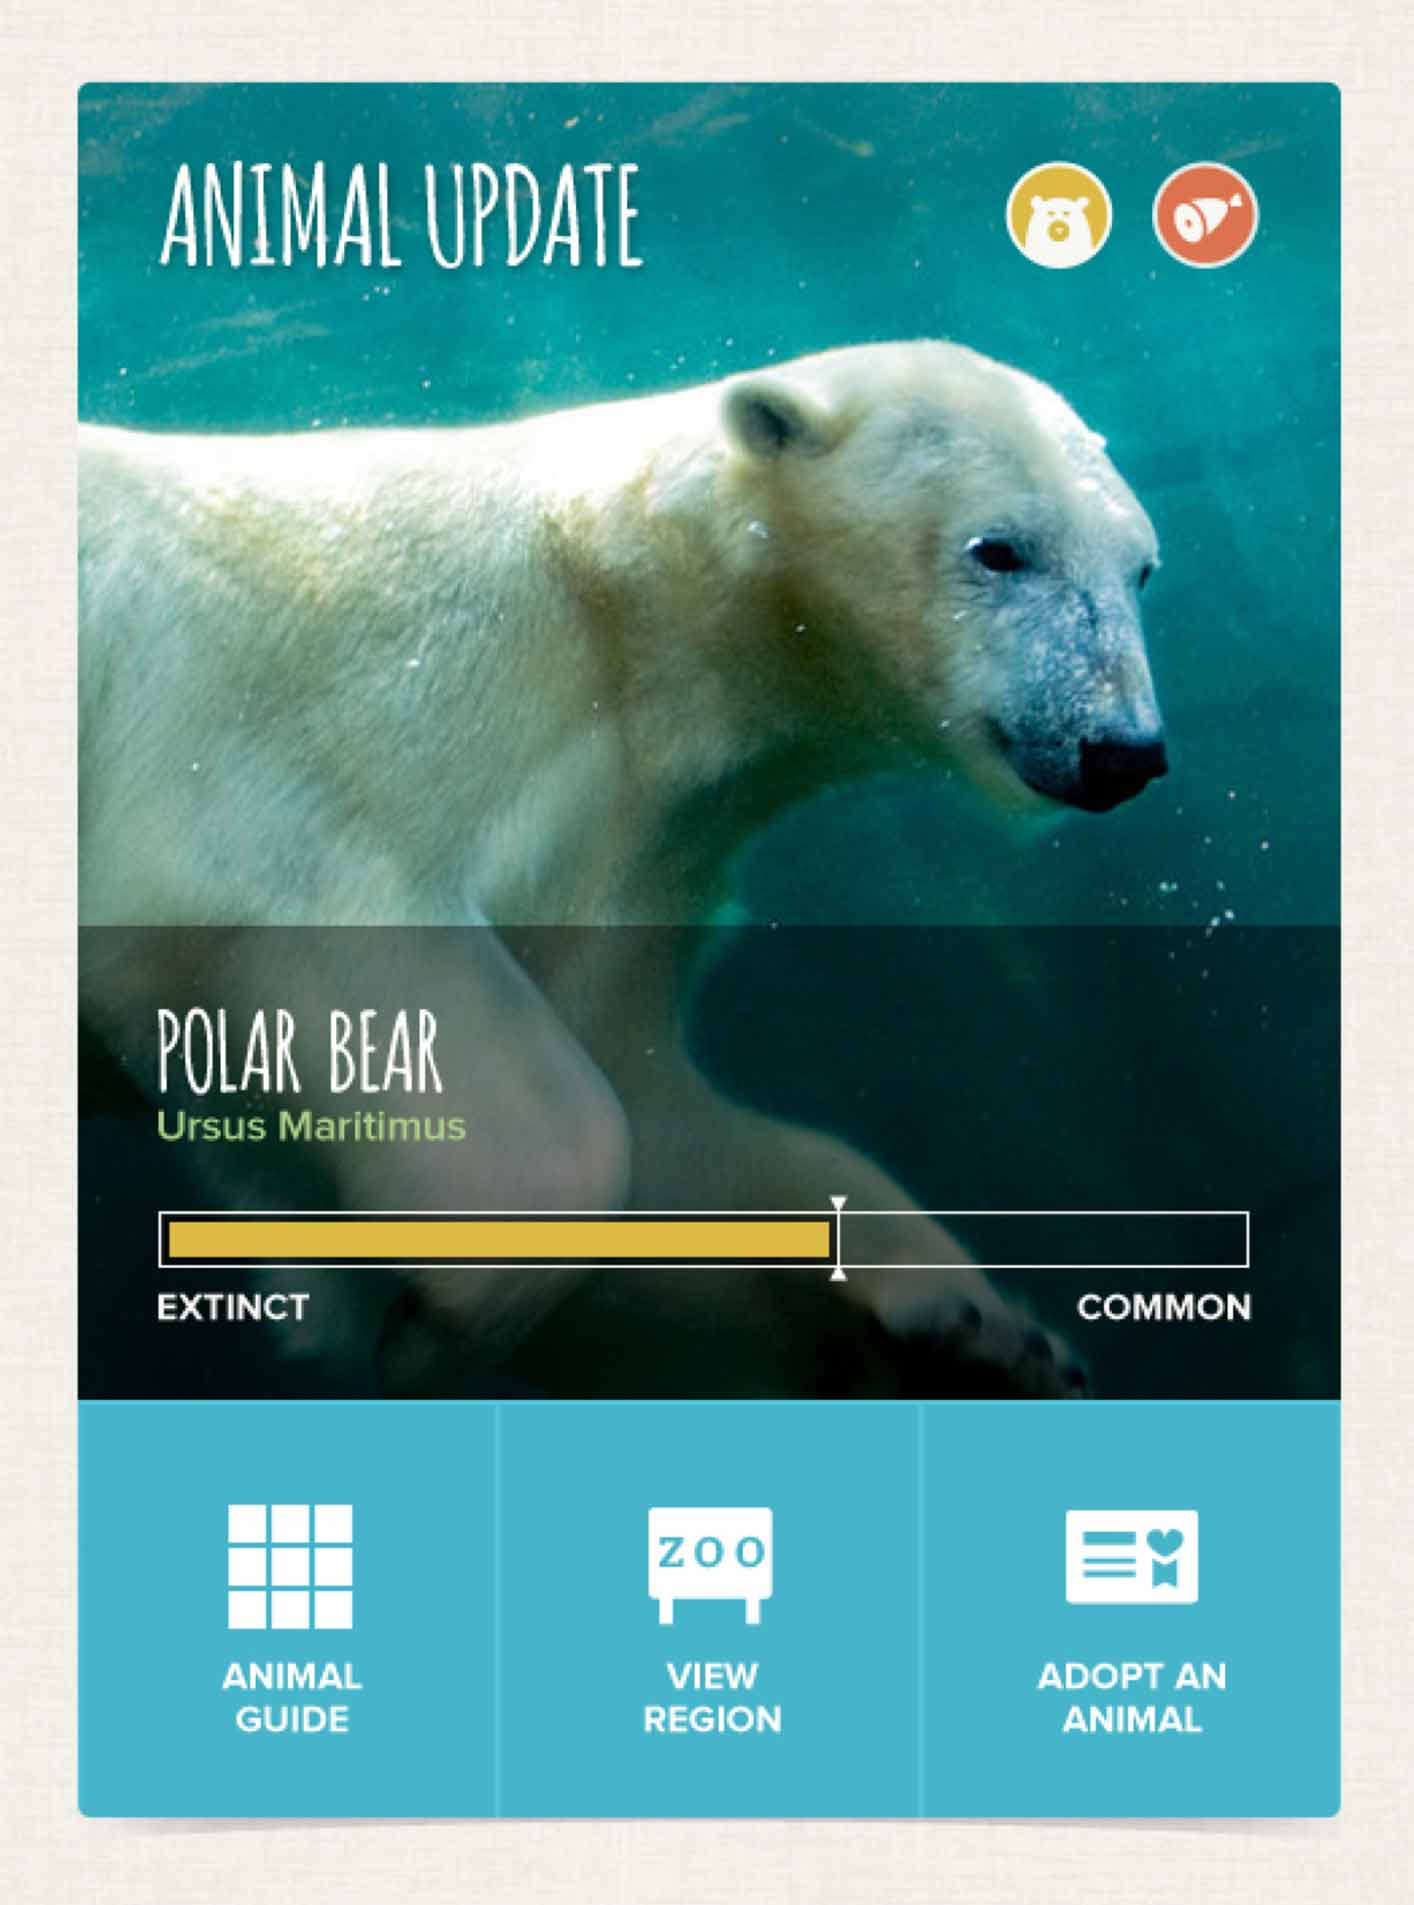 Columbus Zoo Website - Animal Update Module